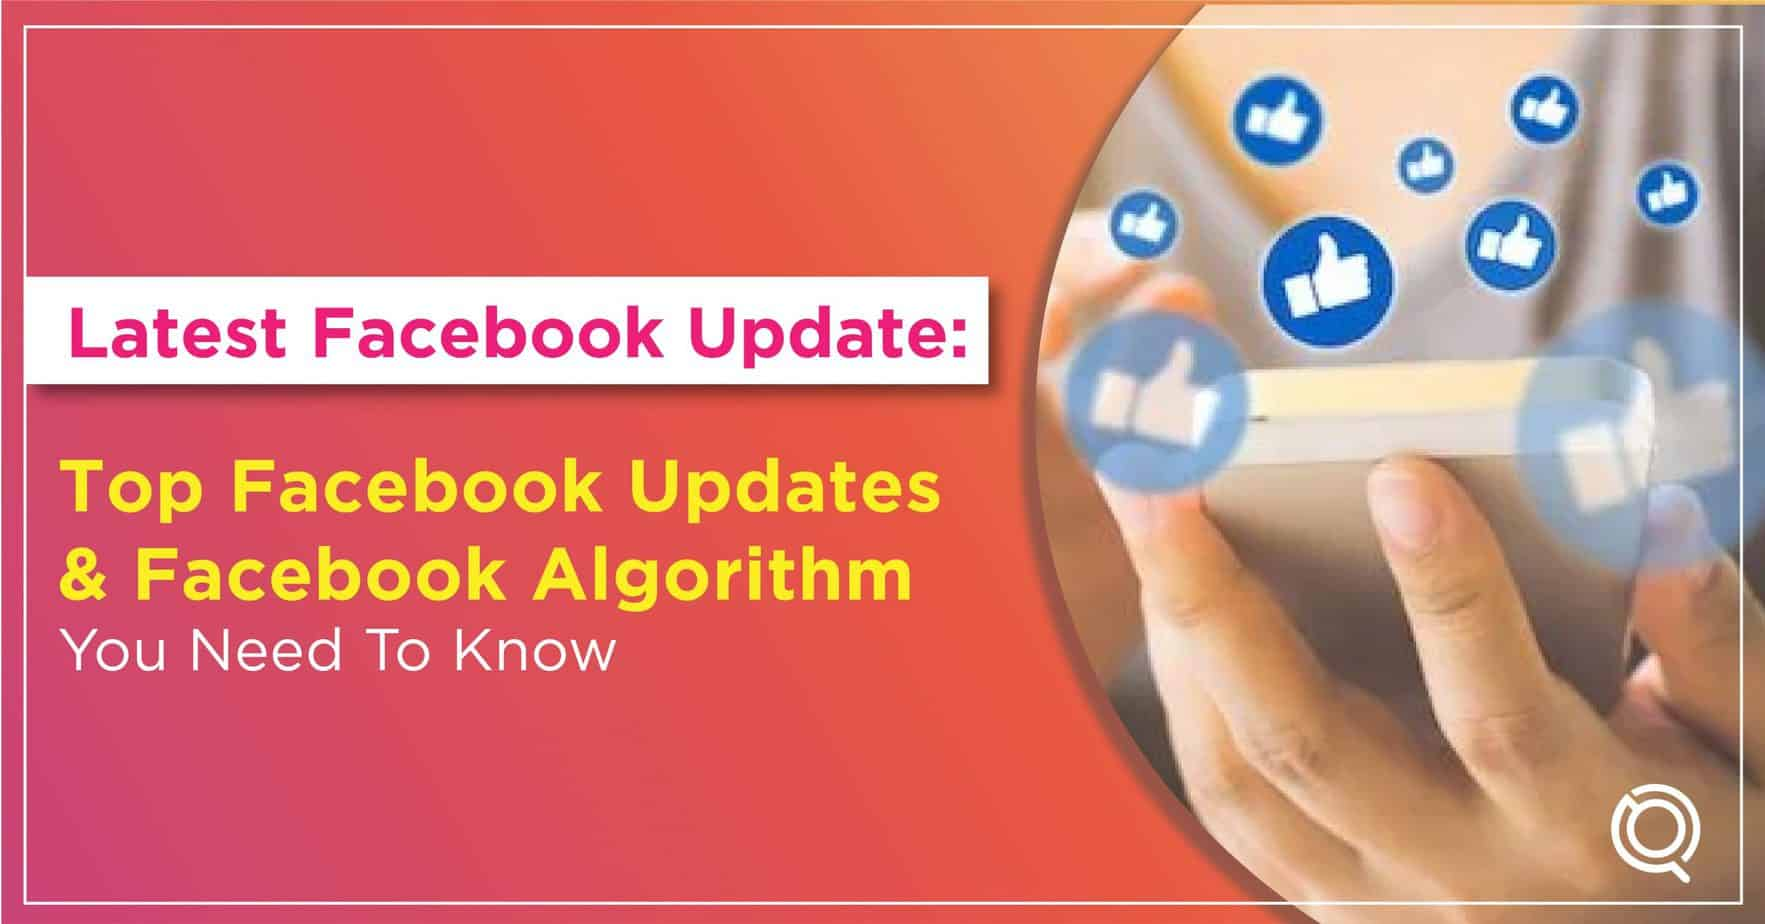 Top Facebook Updates You Need To Know In 2021 - One Search Pro Digital Marketing Agency